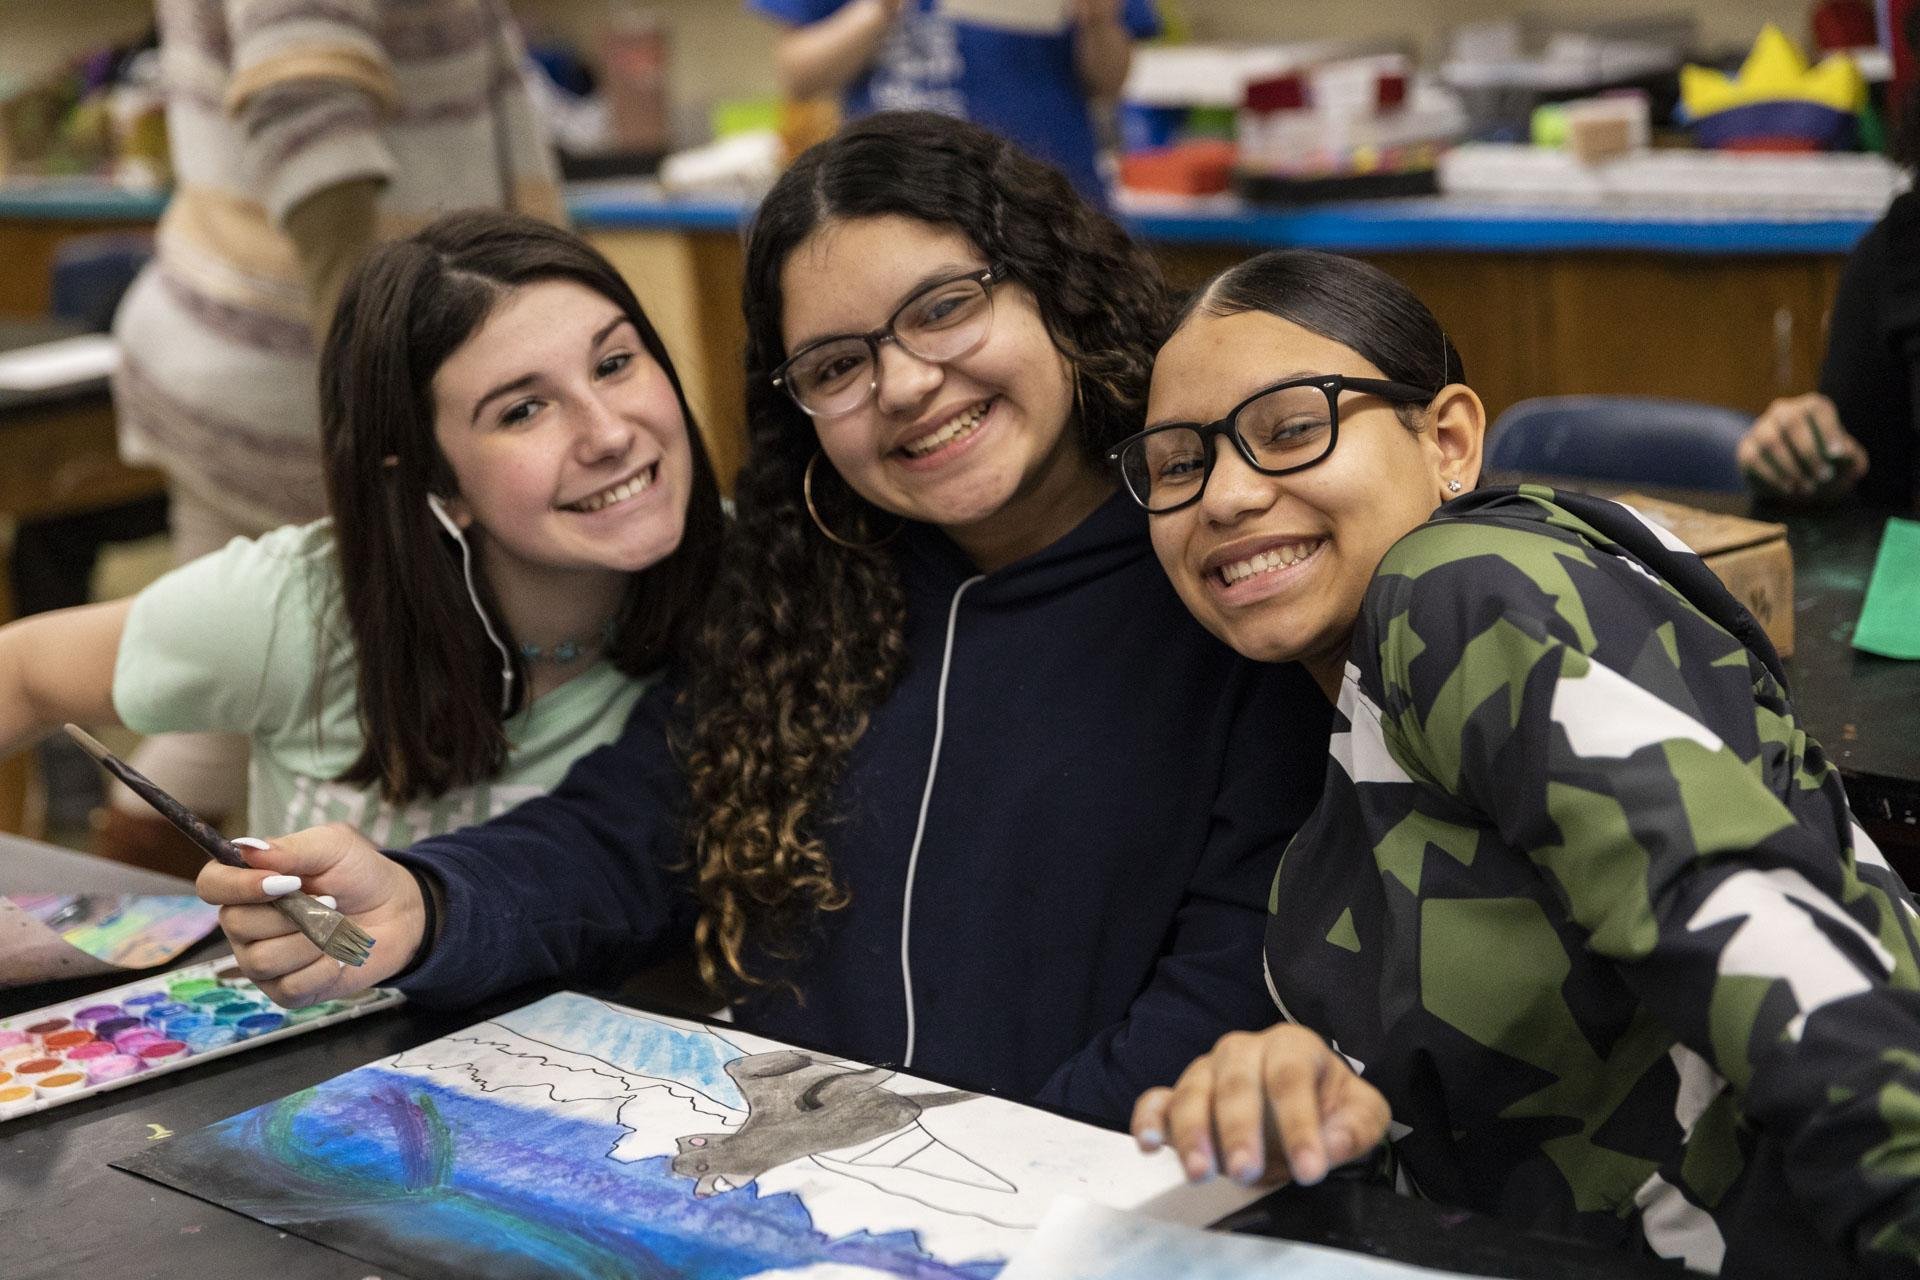 Three students smiling in art class